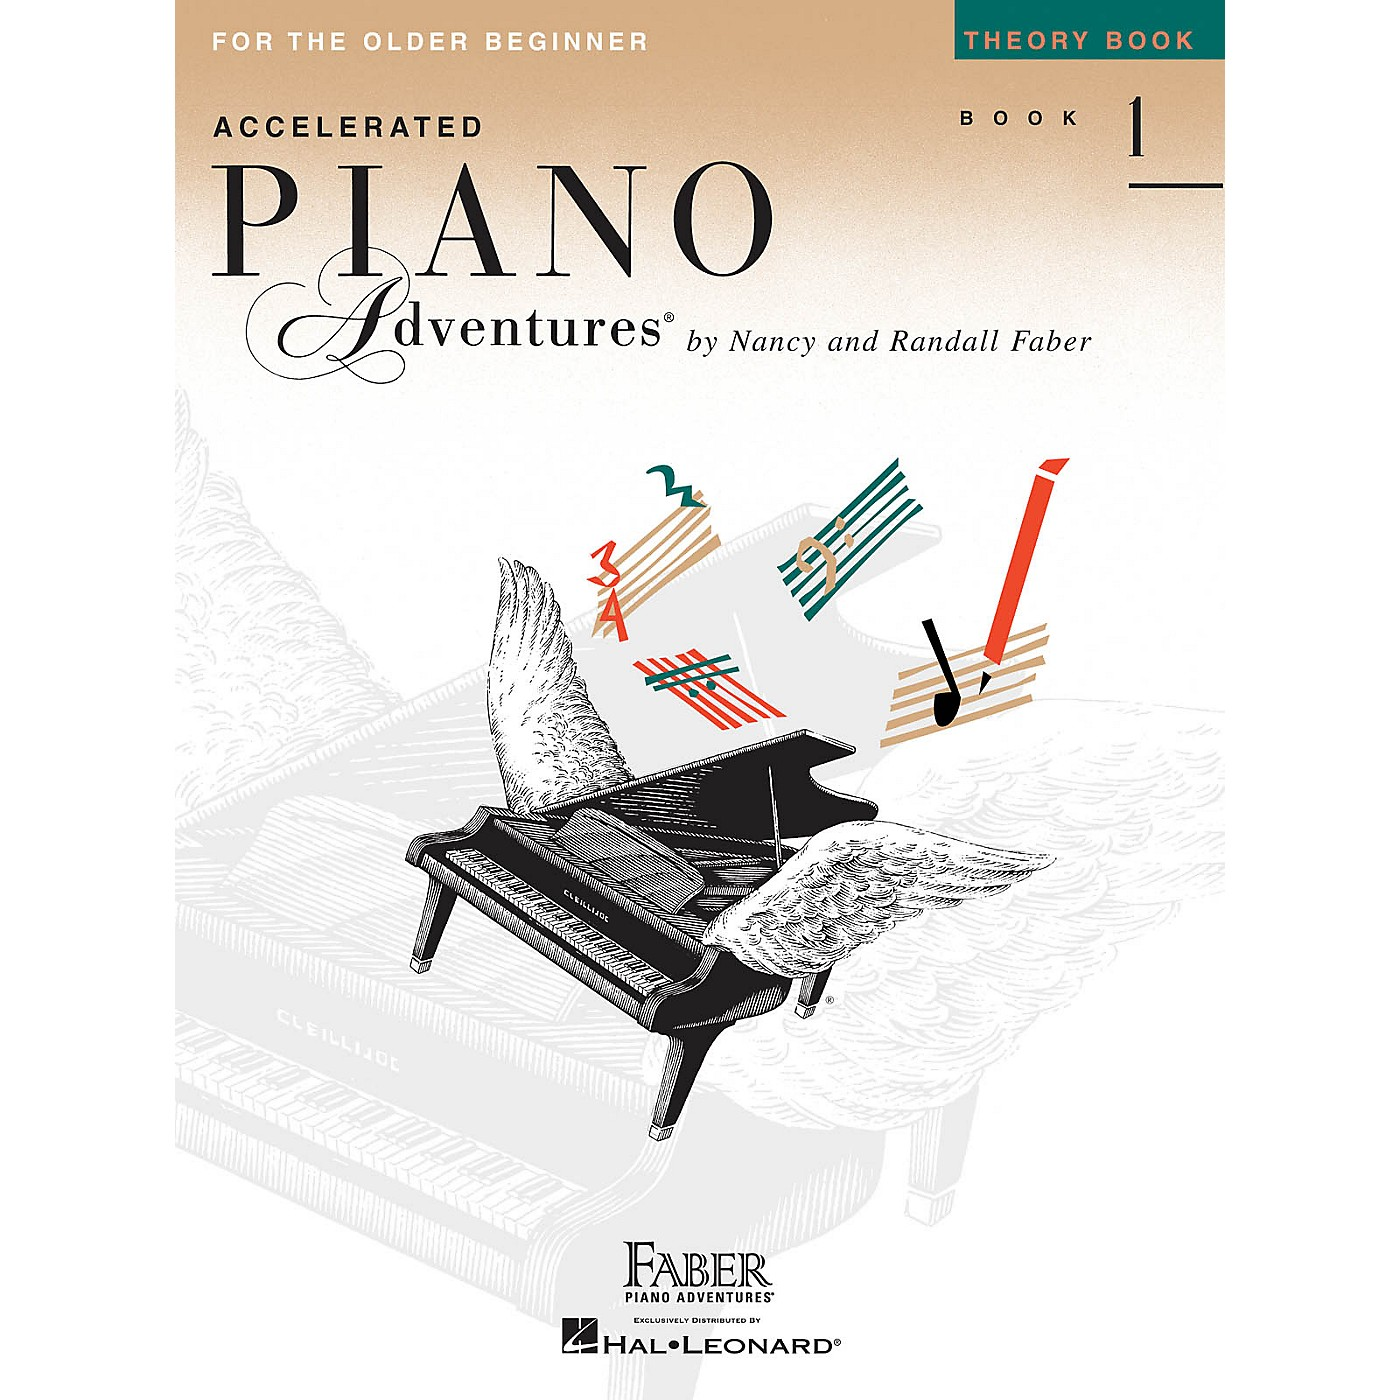 Faber Piano Adventures Accelerated Piano Adventures for the Older Beginner - Theory Bk 1, International Edition Faber Piano thumbnail